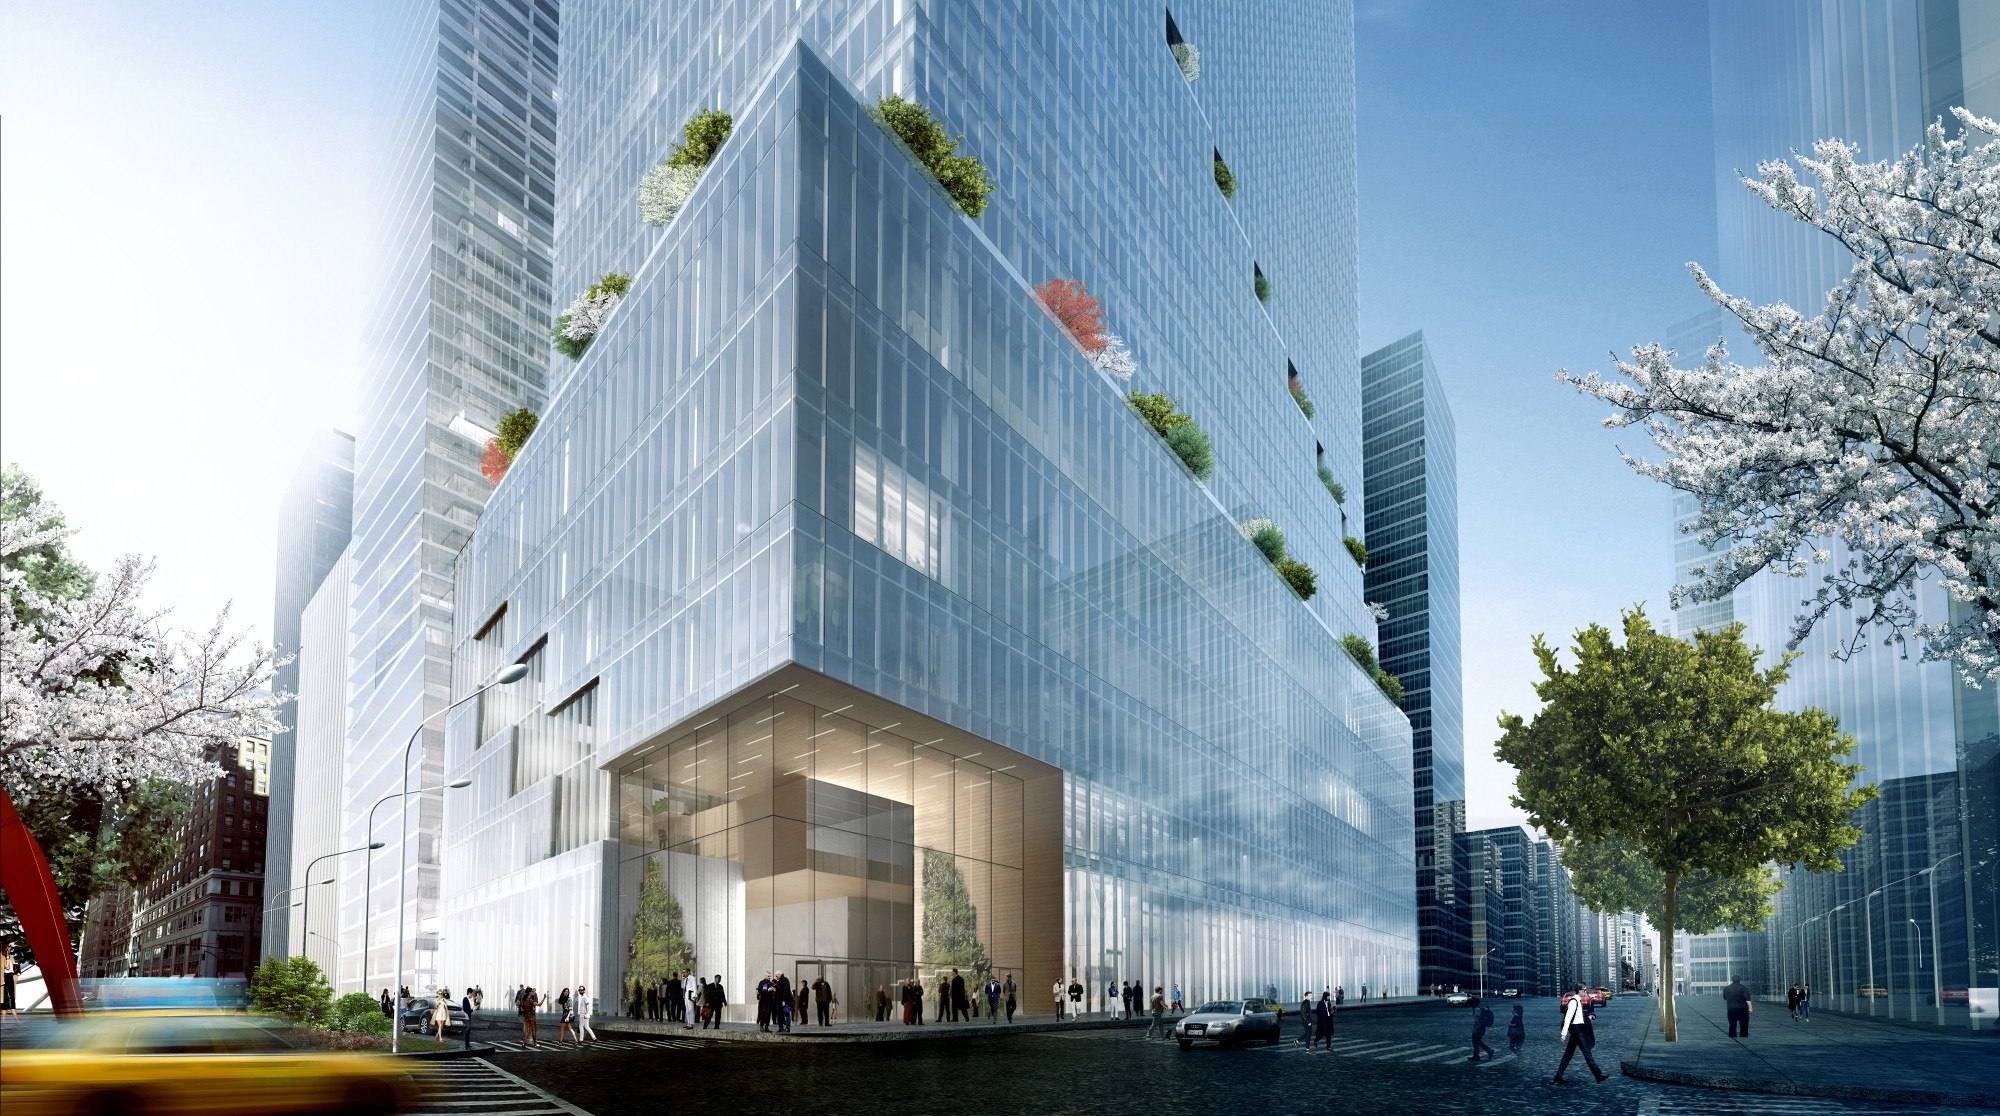 With Pfizer As An Anchor Tenant Construction On Bjarke